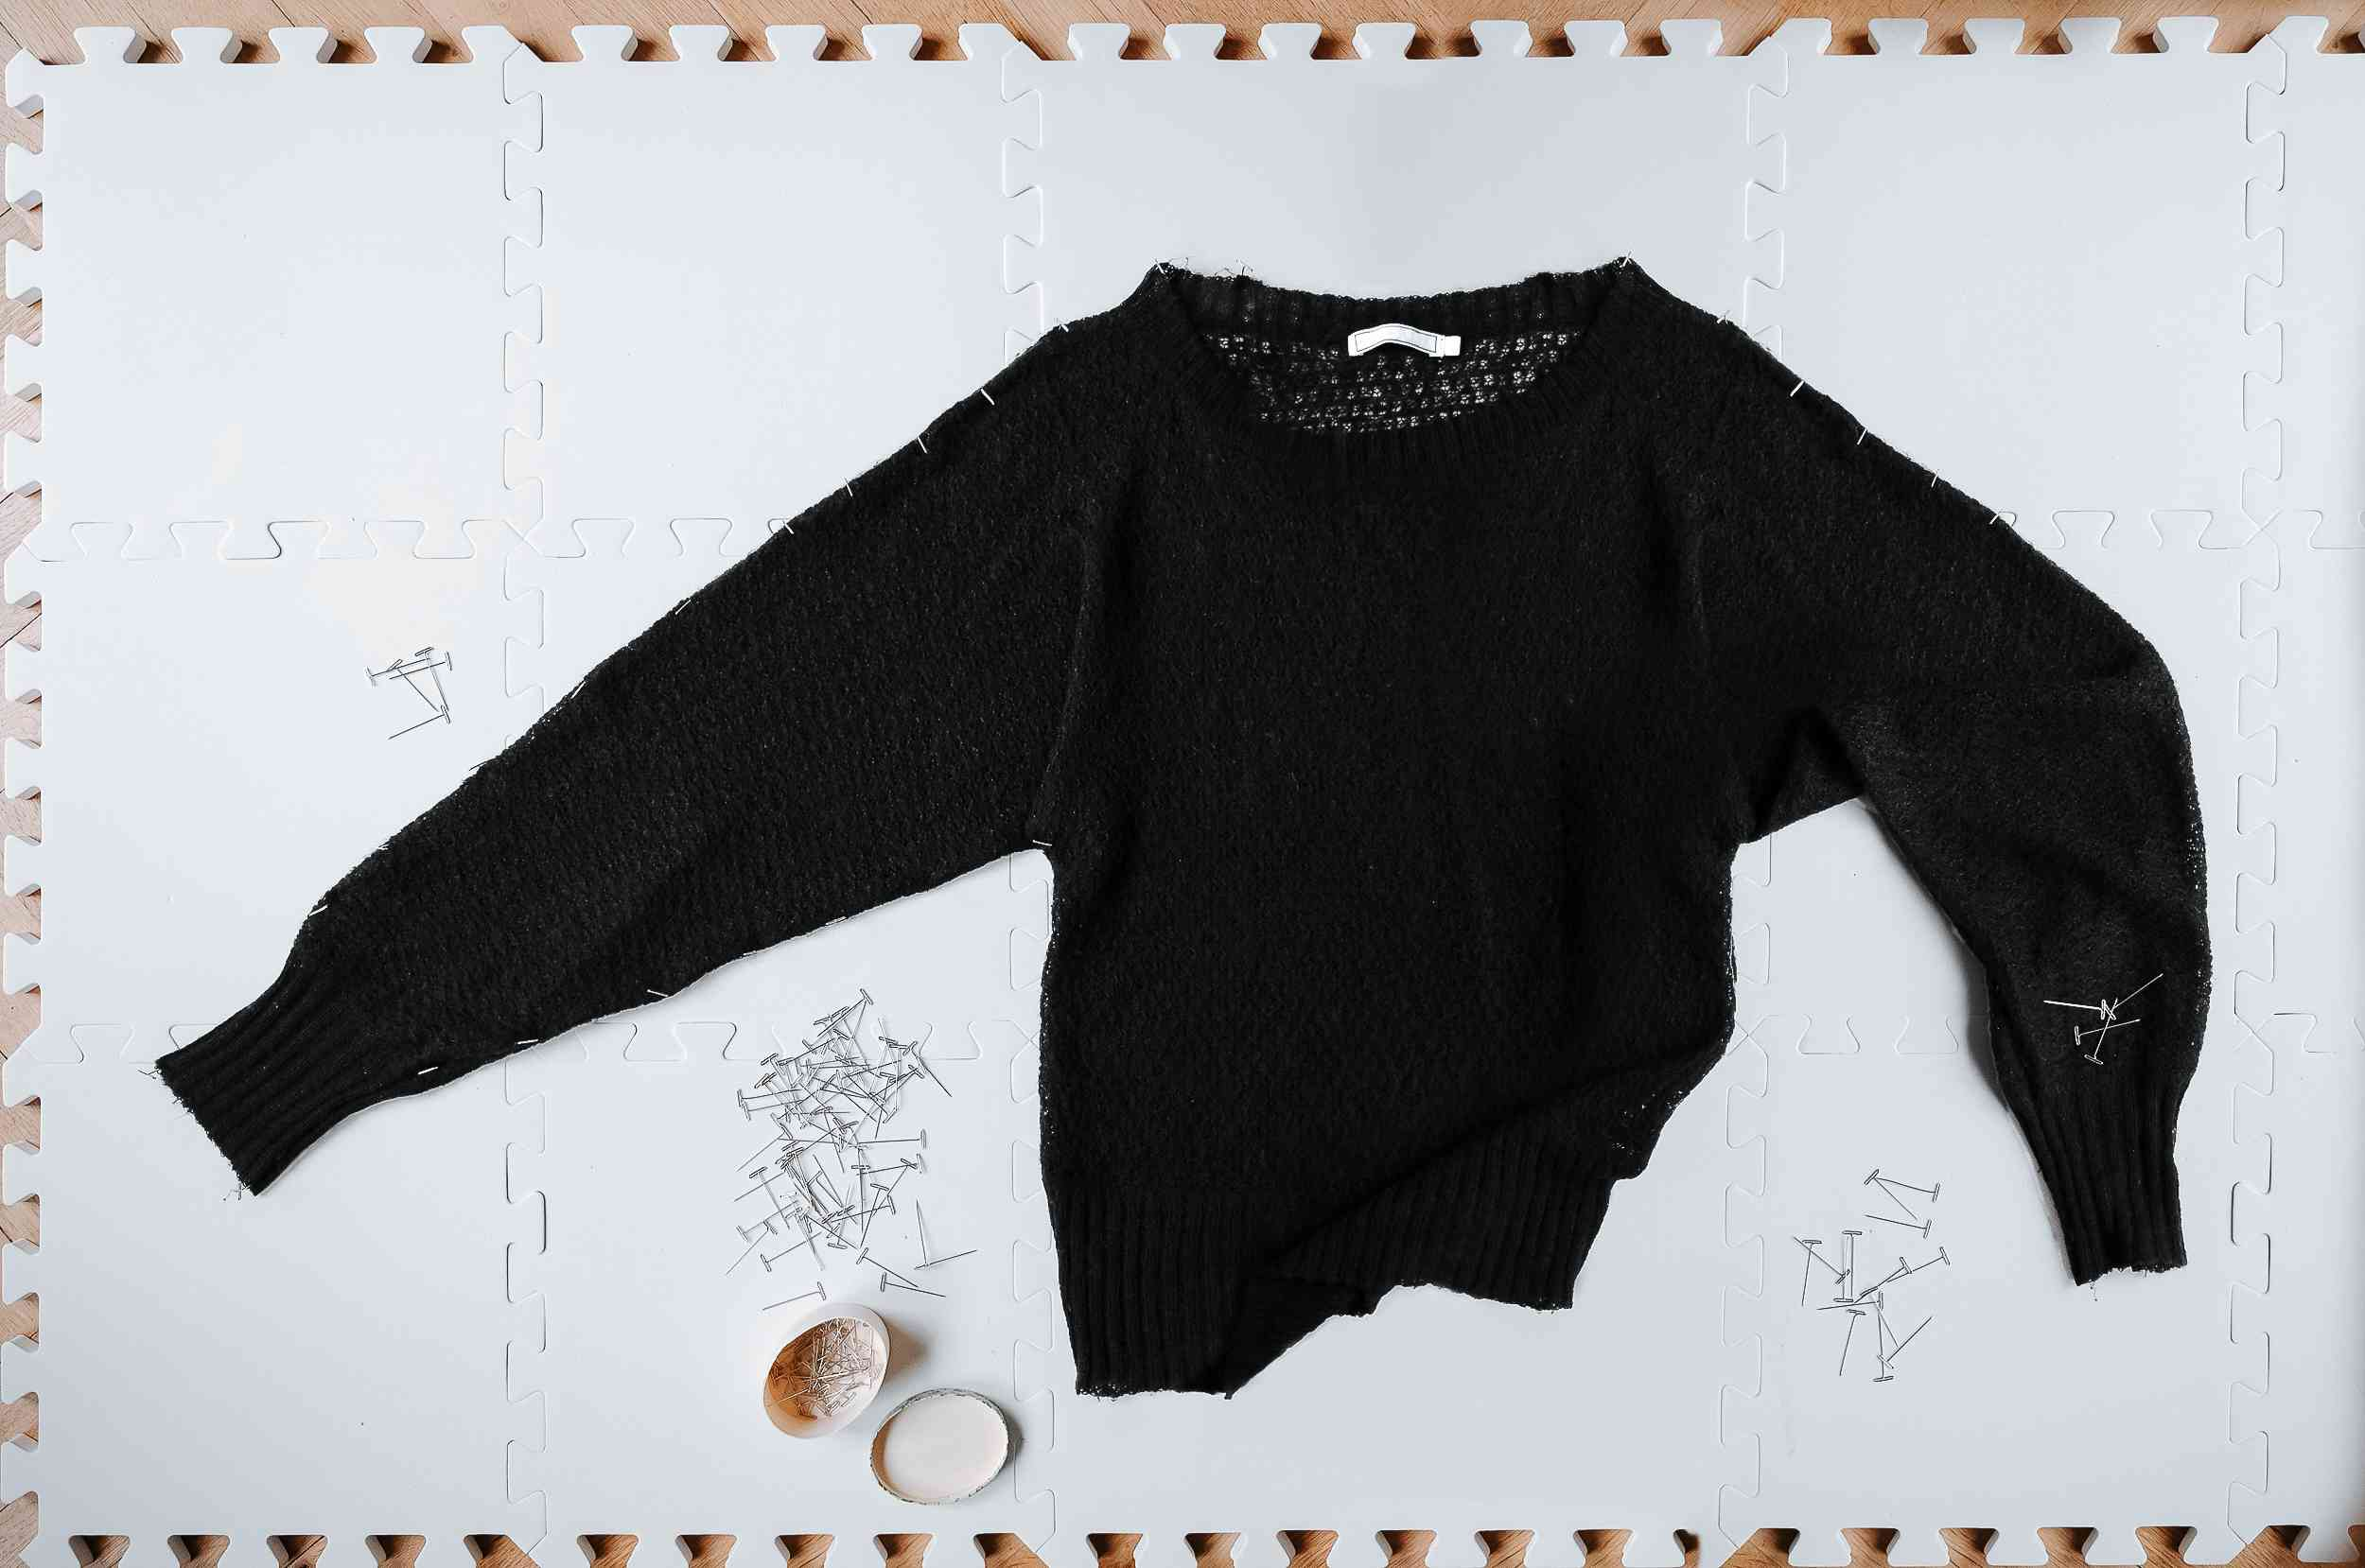 A black sweater pinned to a board to dry